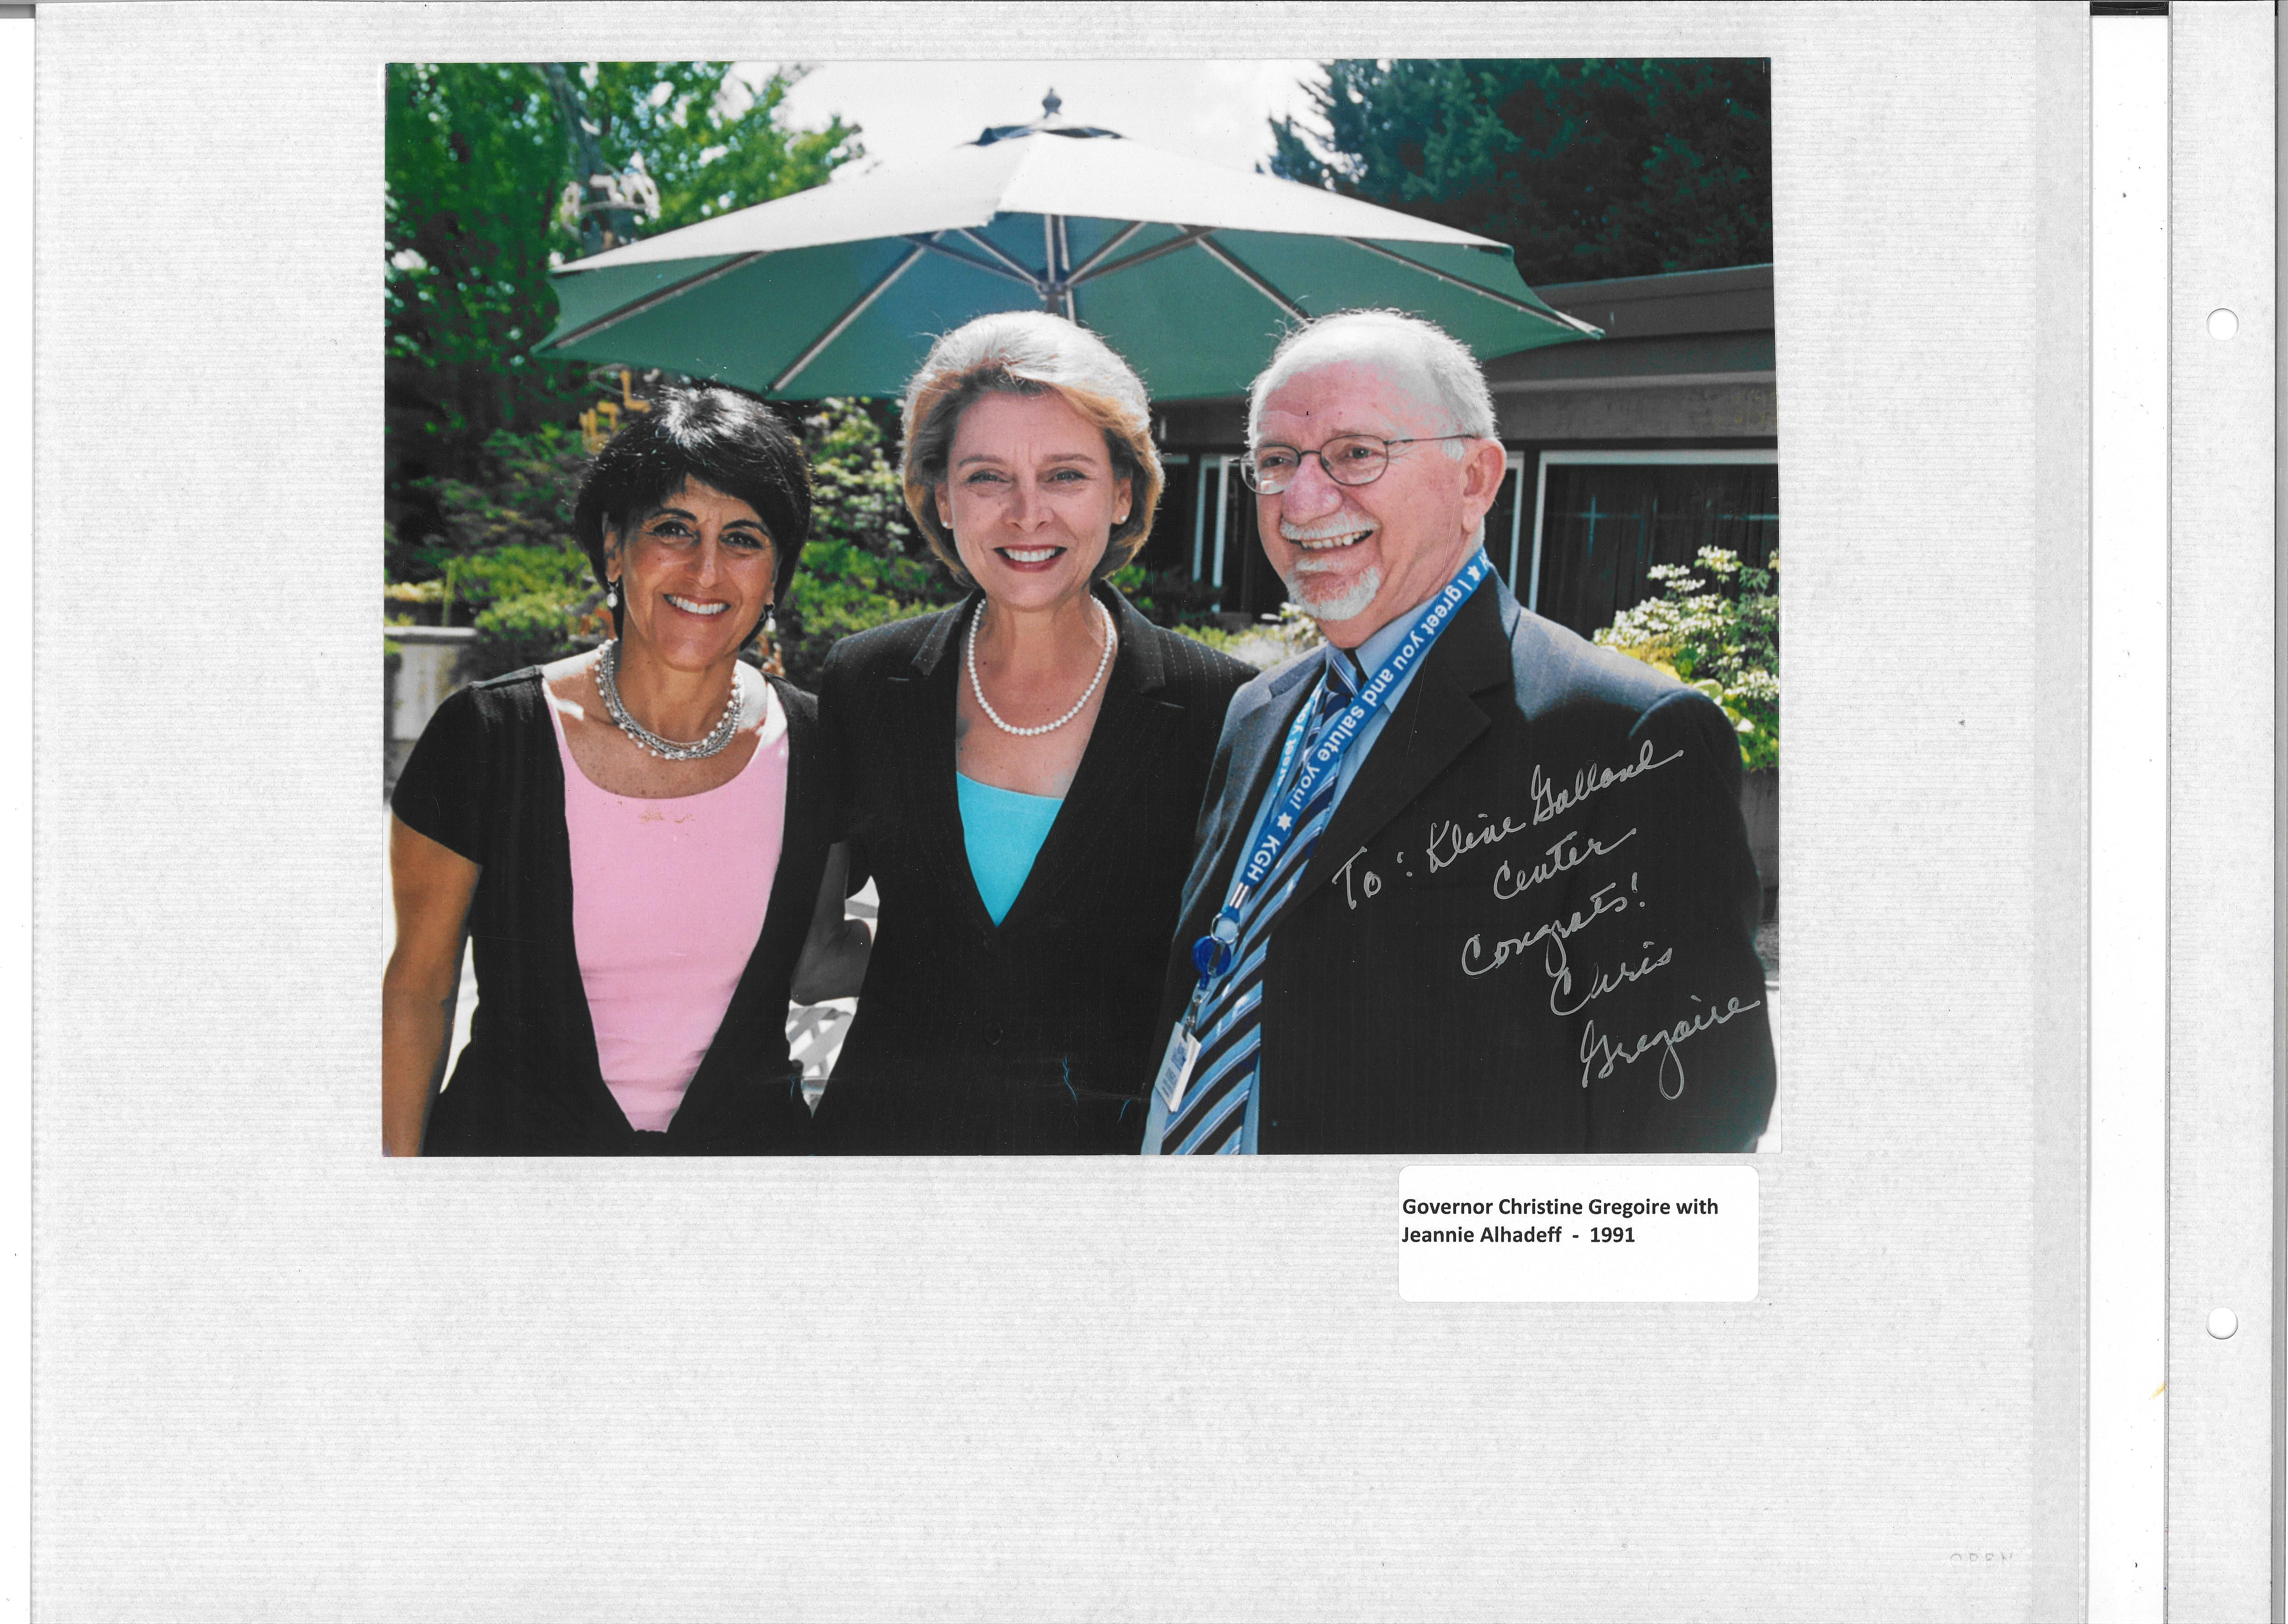 Gortler with Governor Gregoire